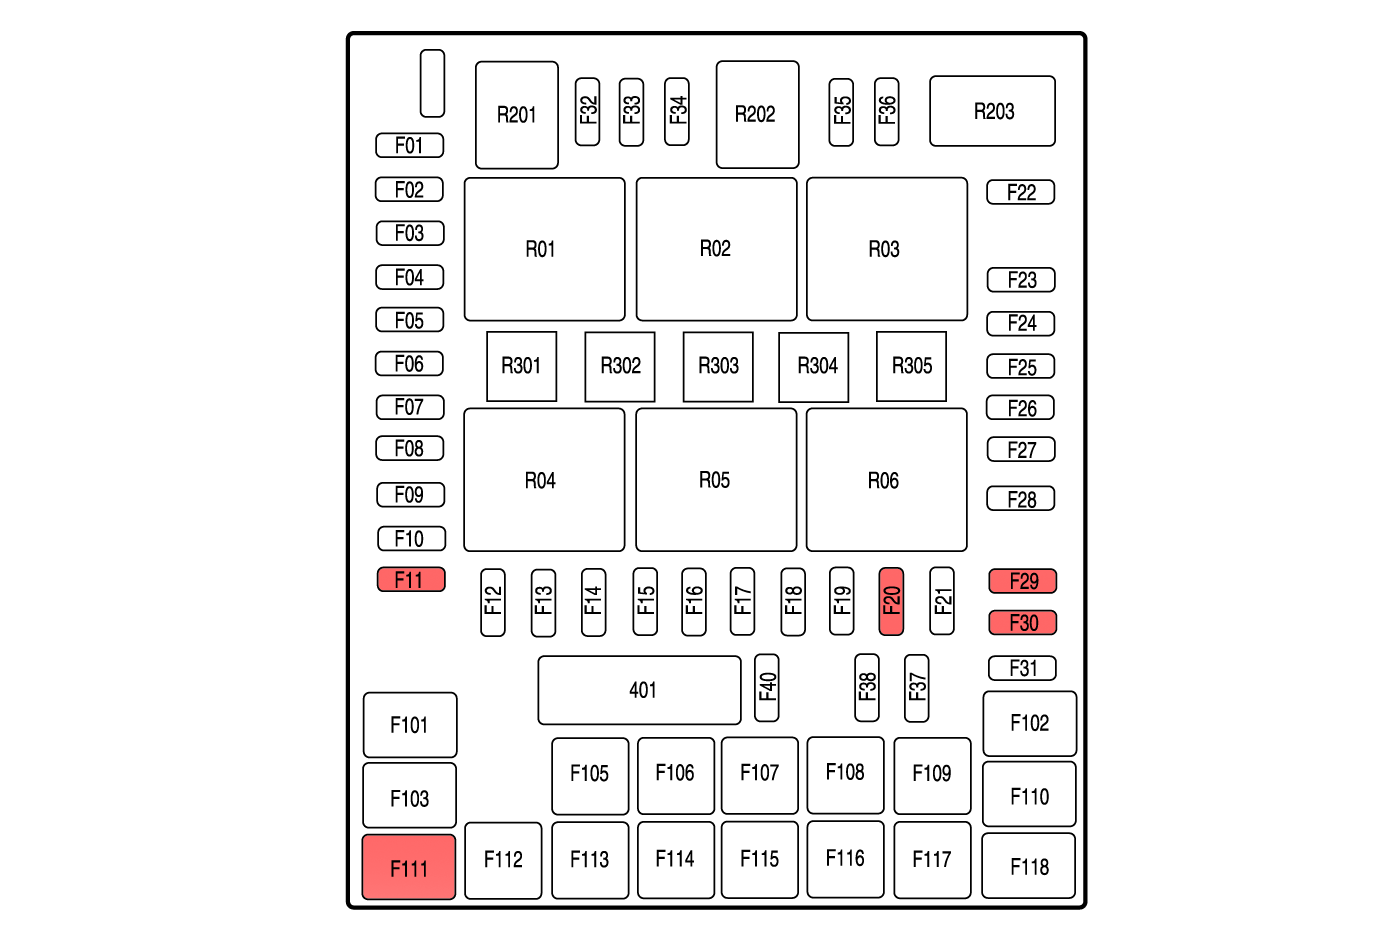 2003 f150 fuse diagram ford f150 f250 why can t i get into or out of 4wd ford trucks 2008 ford ford e350 fuse box diagram